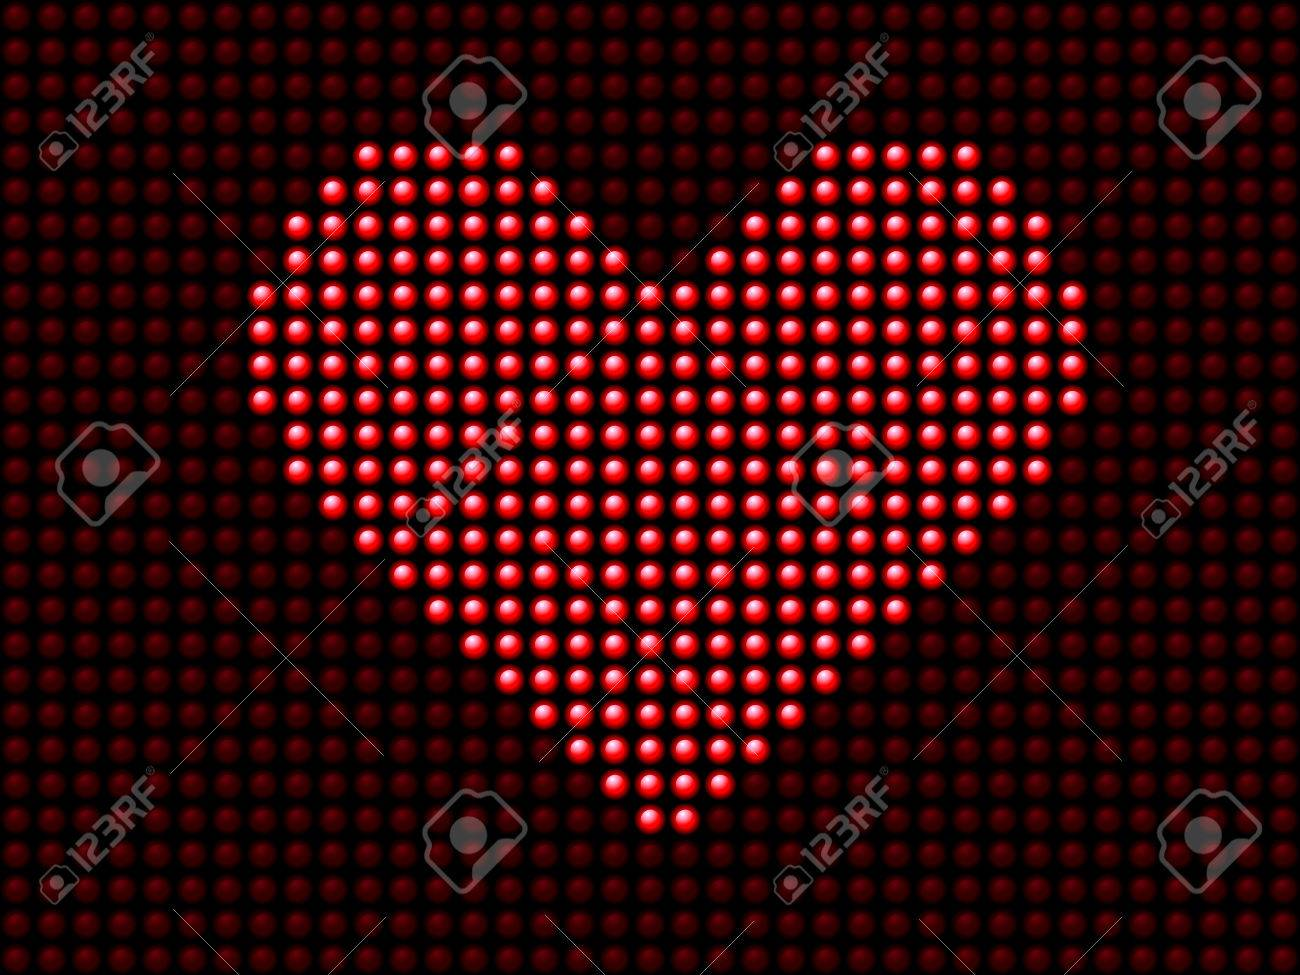 Valentine's day love heart light panel. Editable Vector Image Stock Vector - 6342383